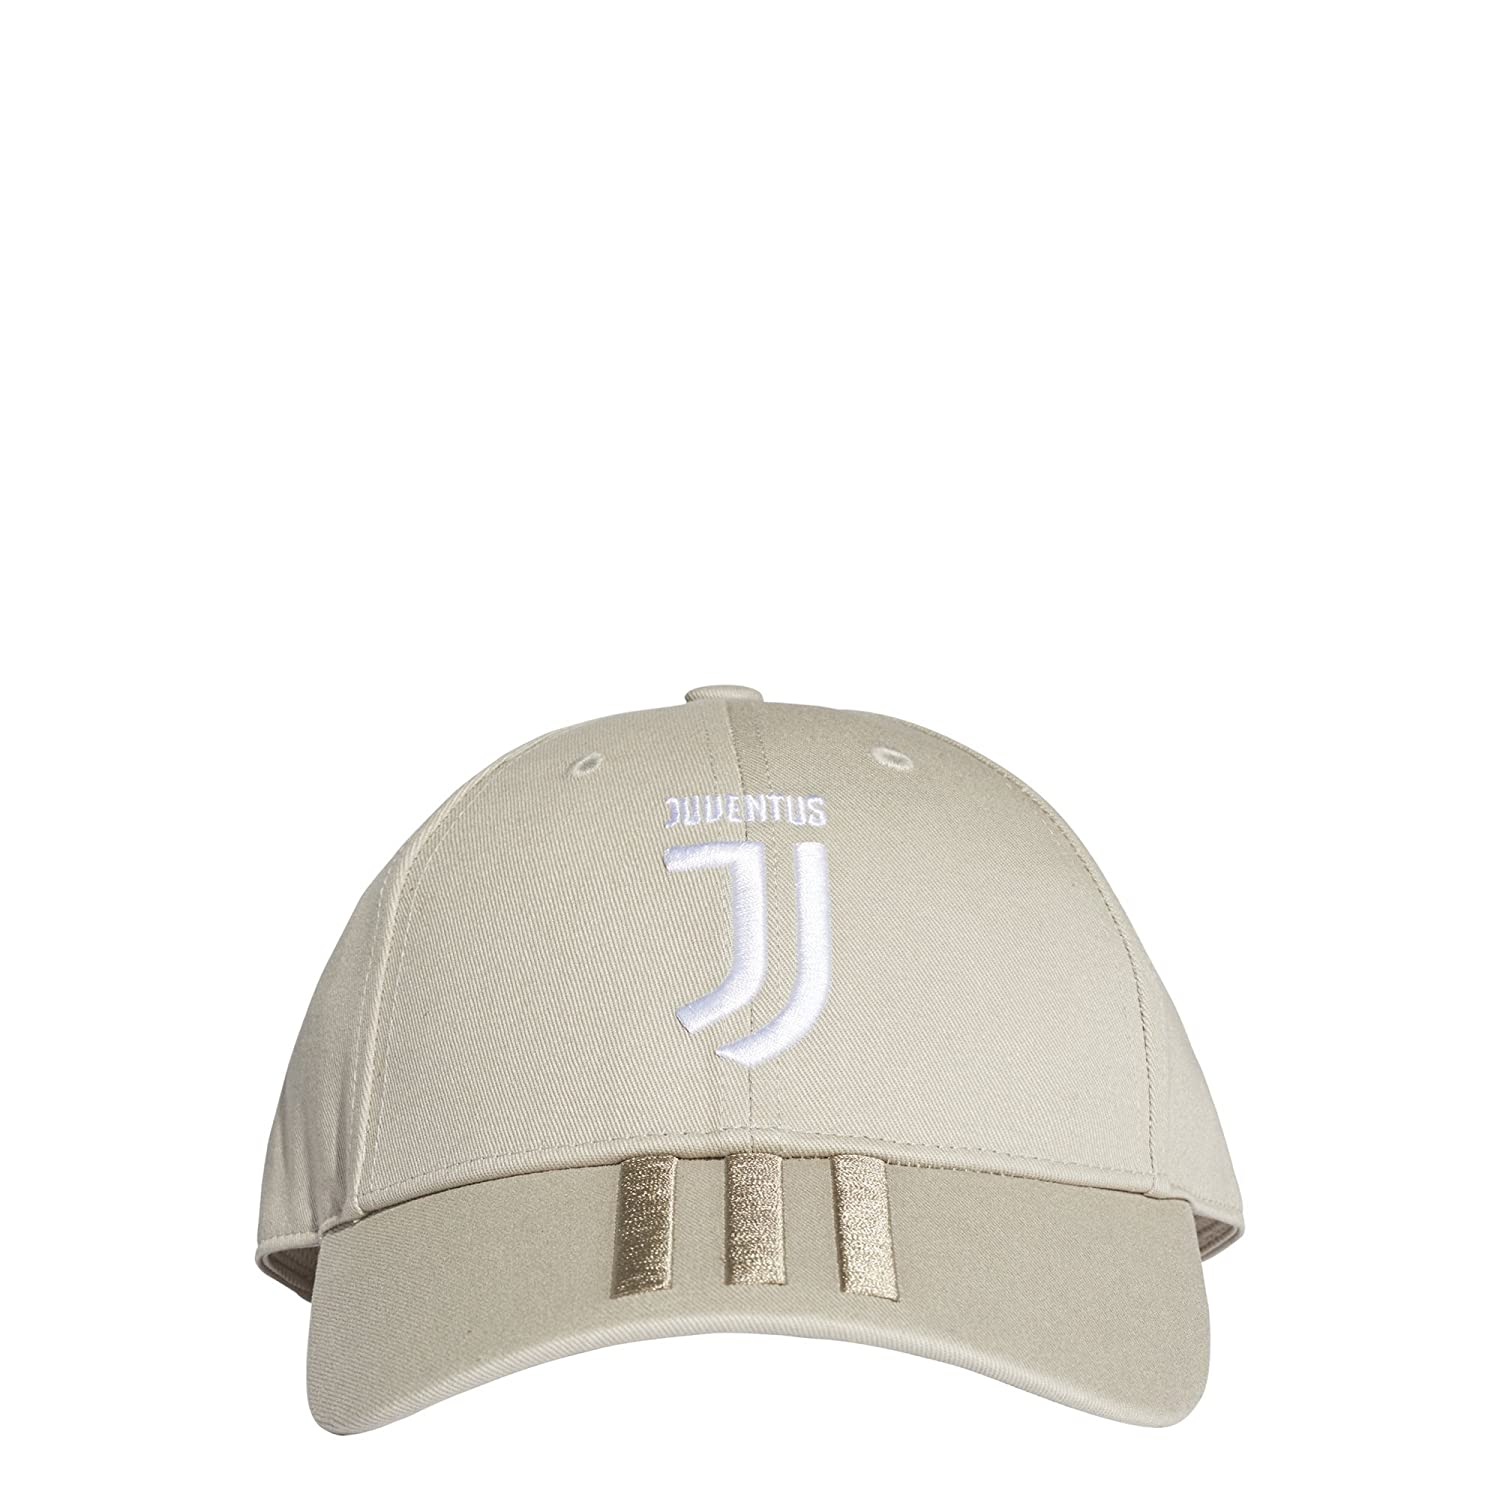 adidas 3 Stripes Cap Juventus, Unisex adidas Men's Juve 3S Cap Black/White One Size CY5558